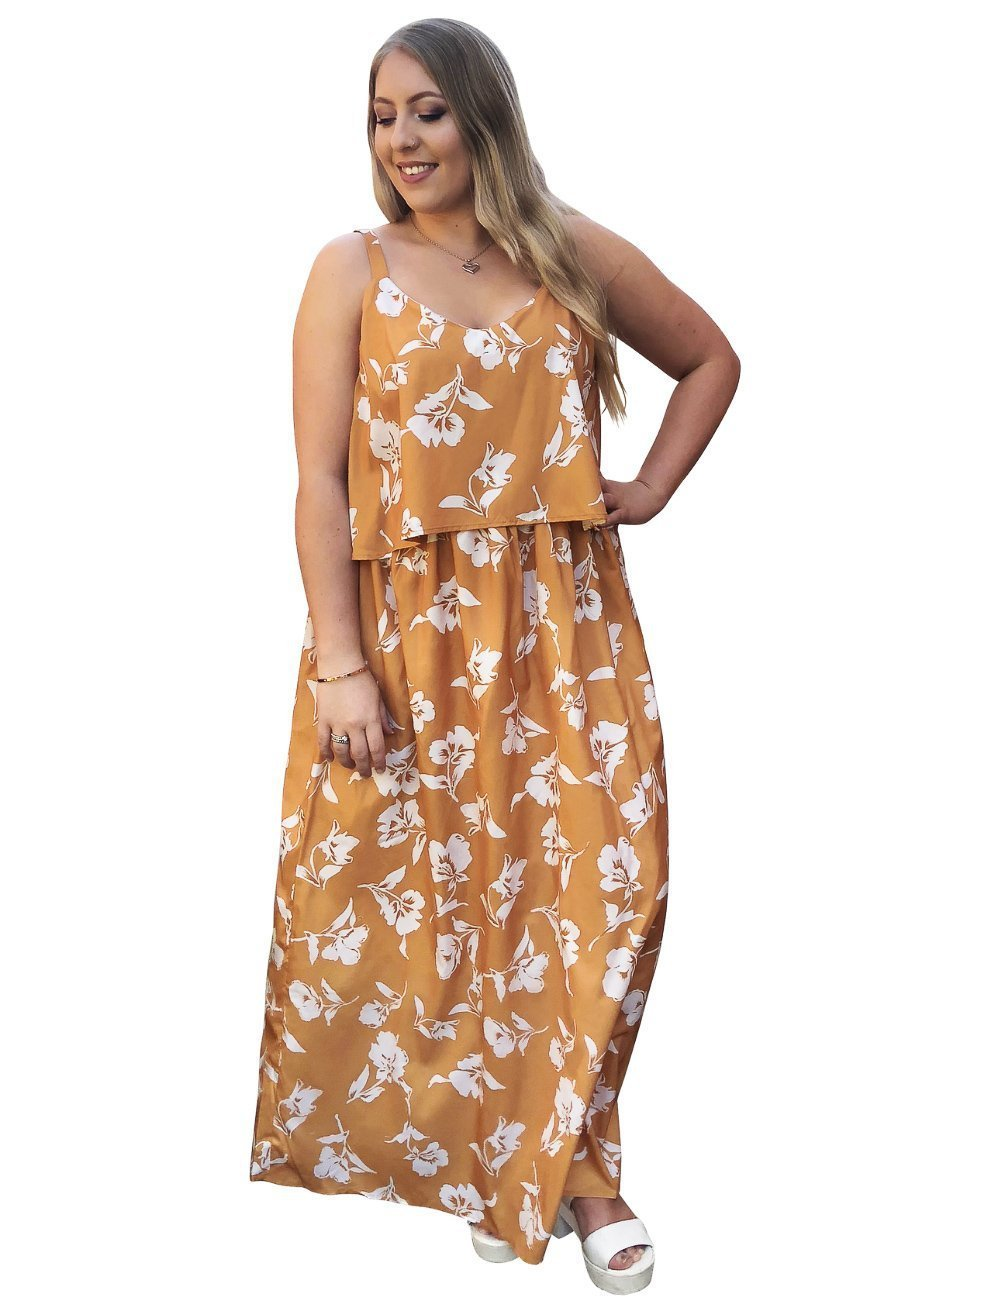 d440b380a5 plus size Maxi Dress L / AUS 16 / Mustard Yellow Willow Maxi Dress -  CLEARANCE ...